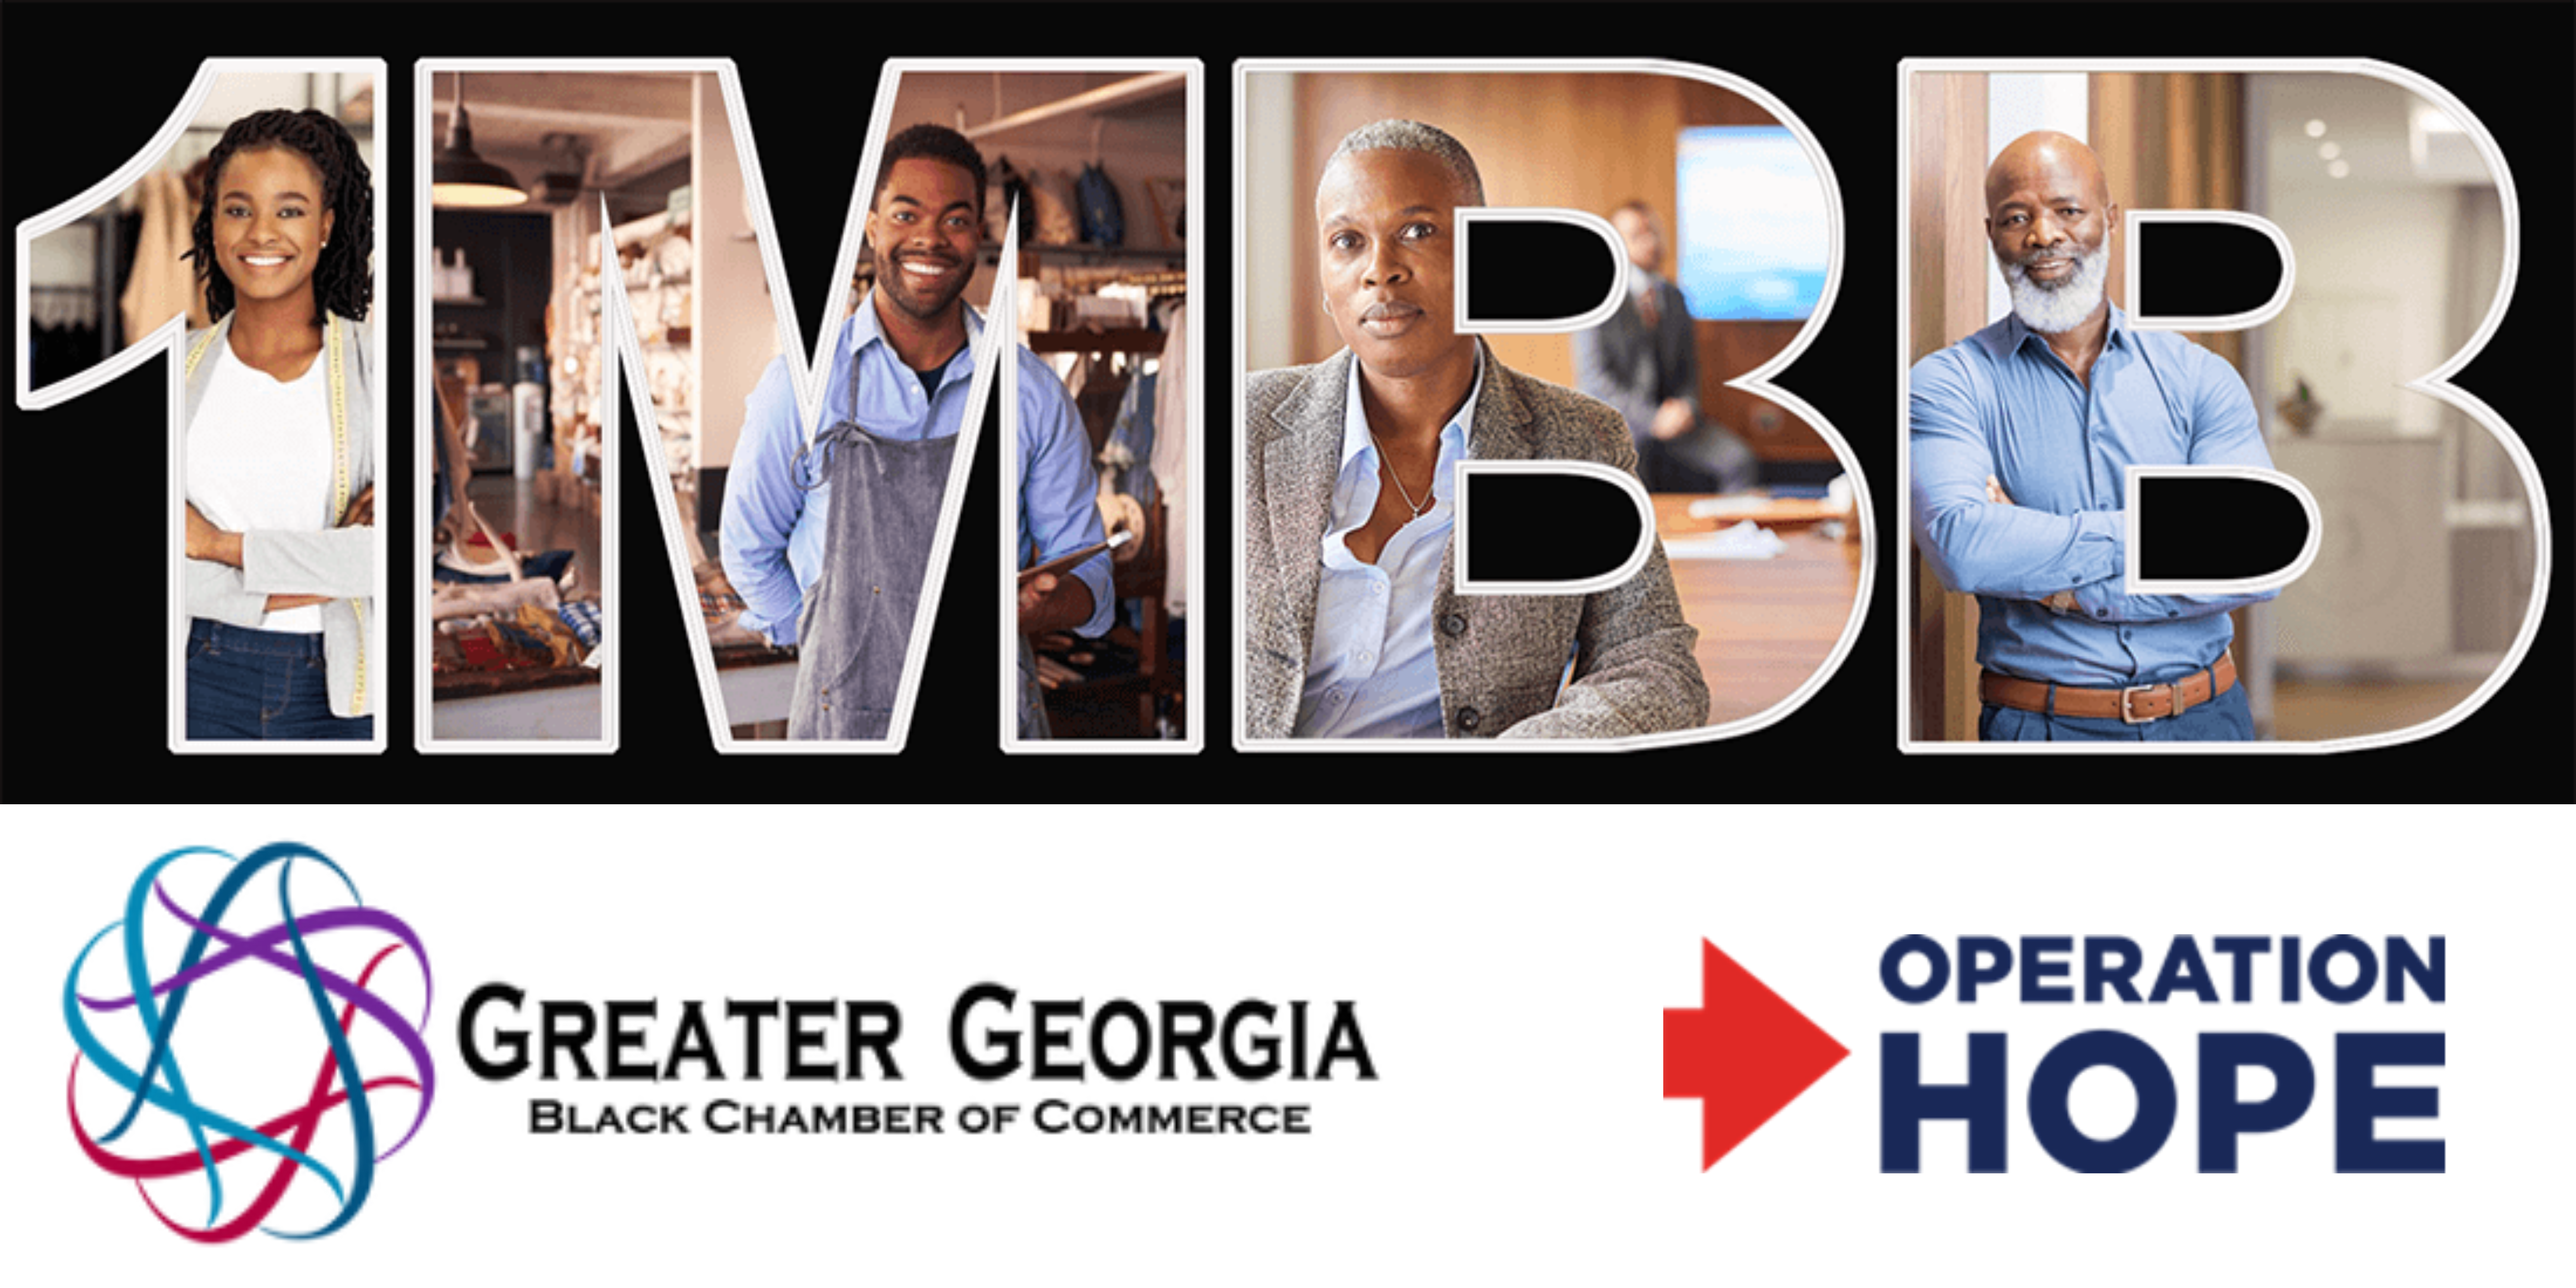 THE GREATER GEORGIA BLACK CHAMBER OF COMMERCE PARTNERS WITH OPERATION HOPE TO HELP CREATE 1 MILLION NEW BLACK BUSINESSES BY 2030